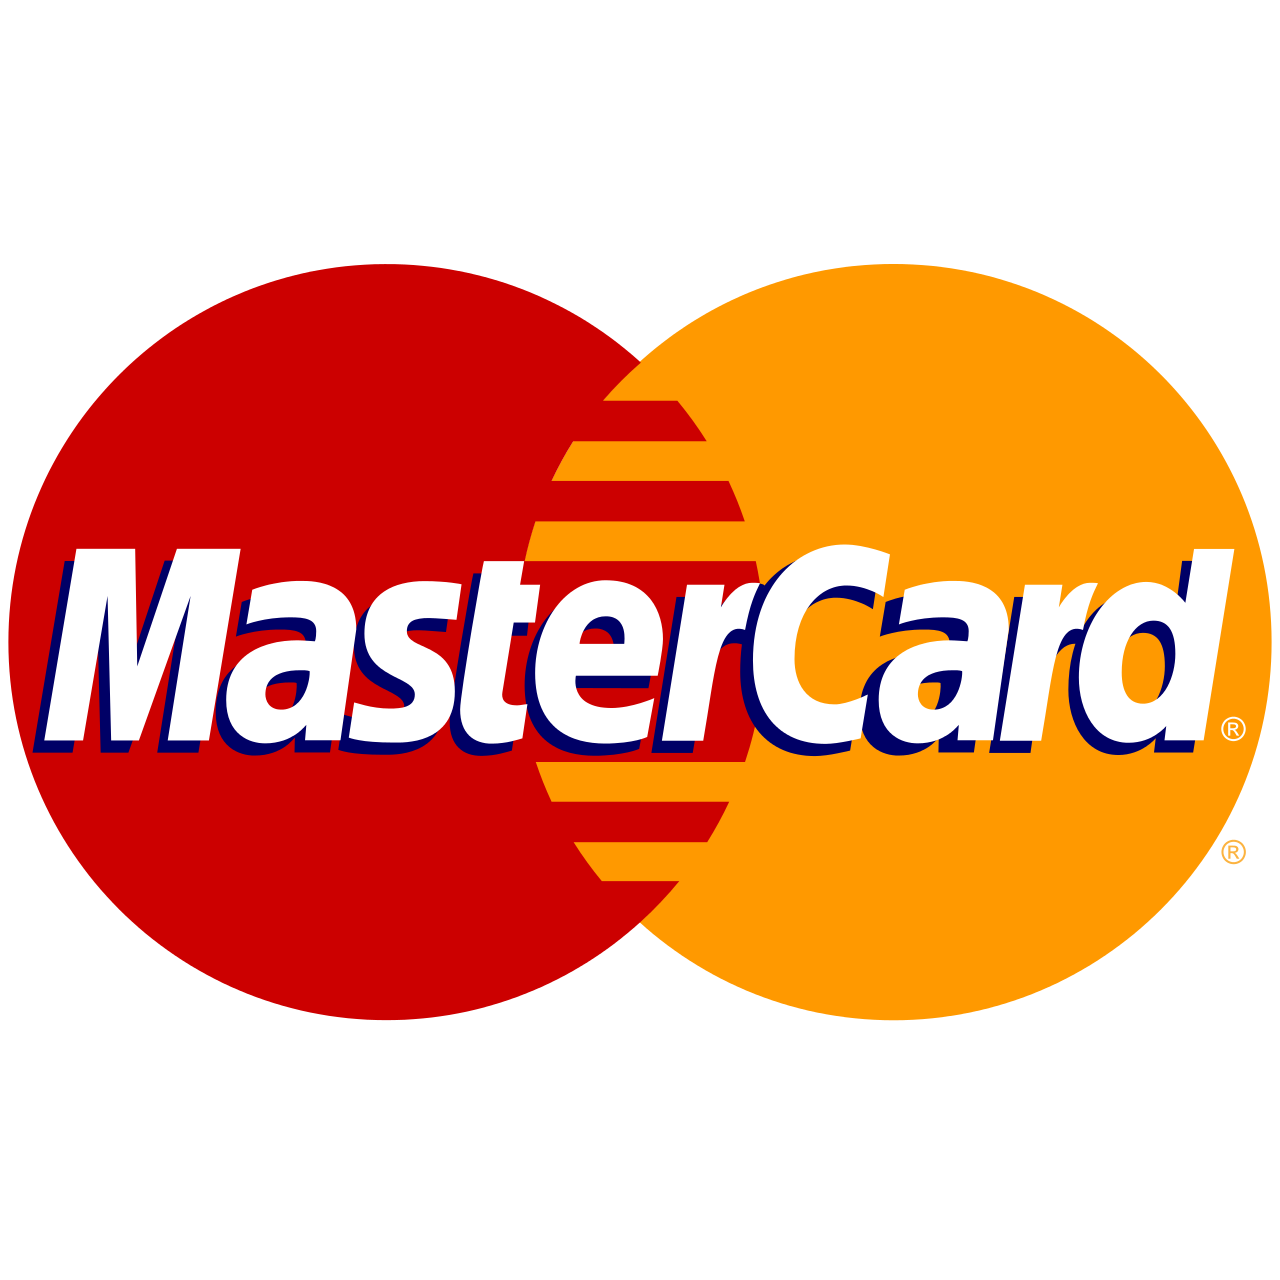 Mastercard Features Apple Pay in 'Priceless Surprises' Ads